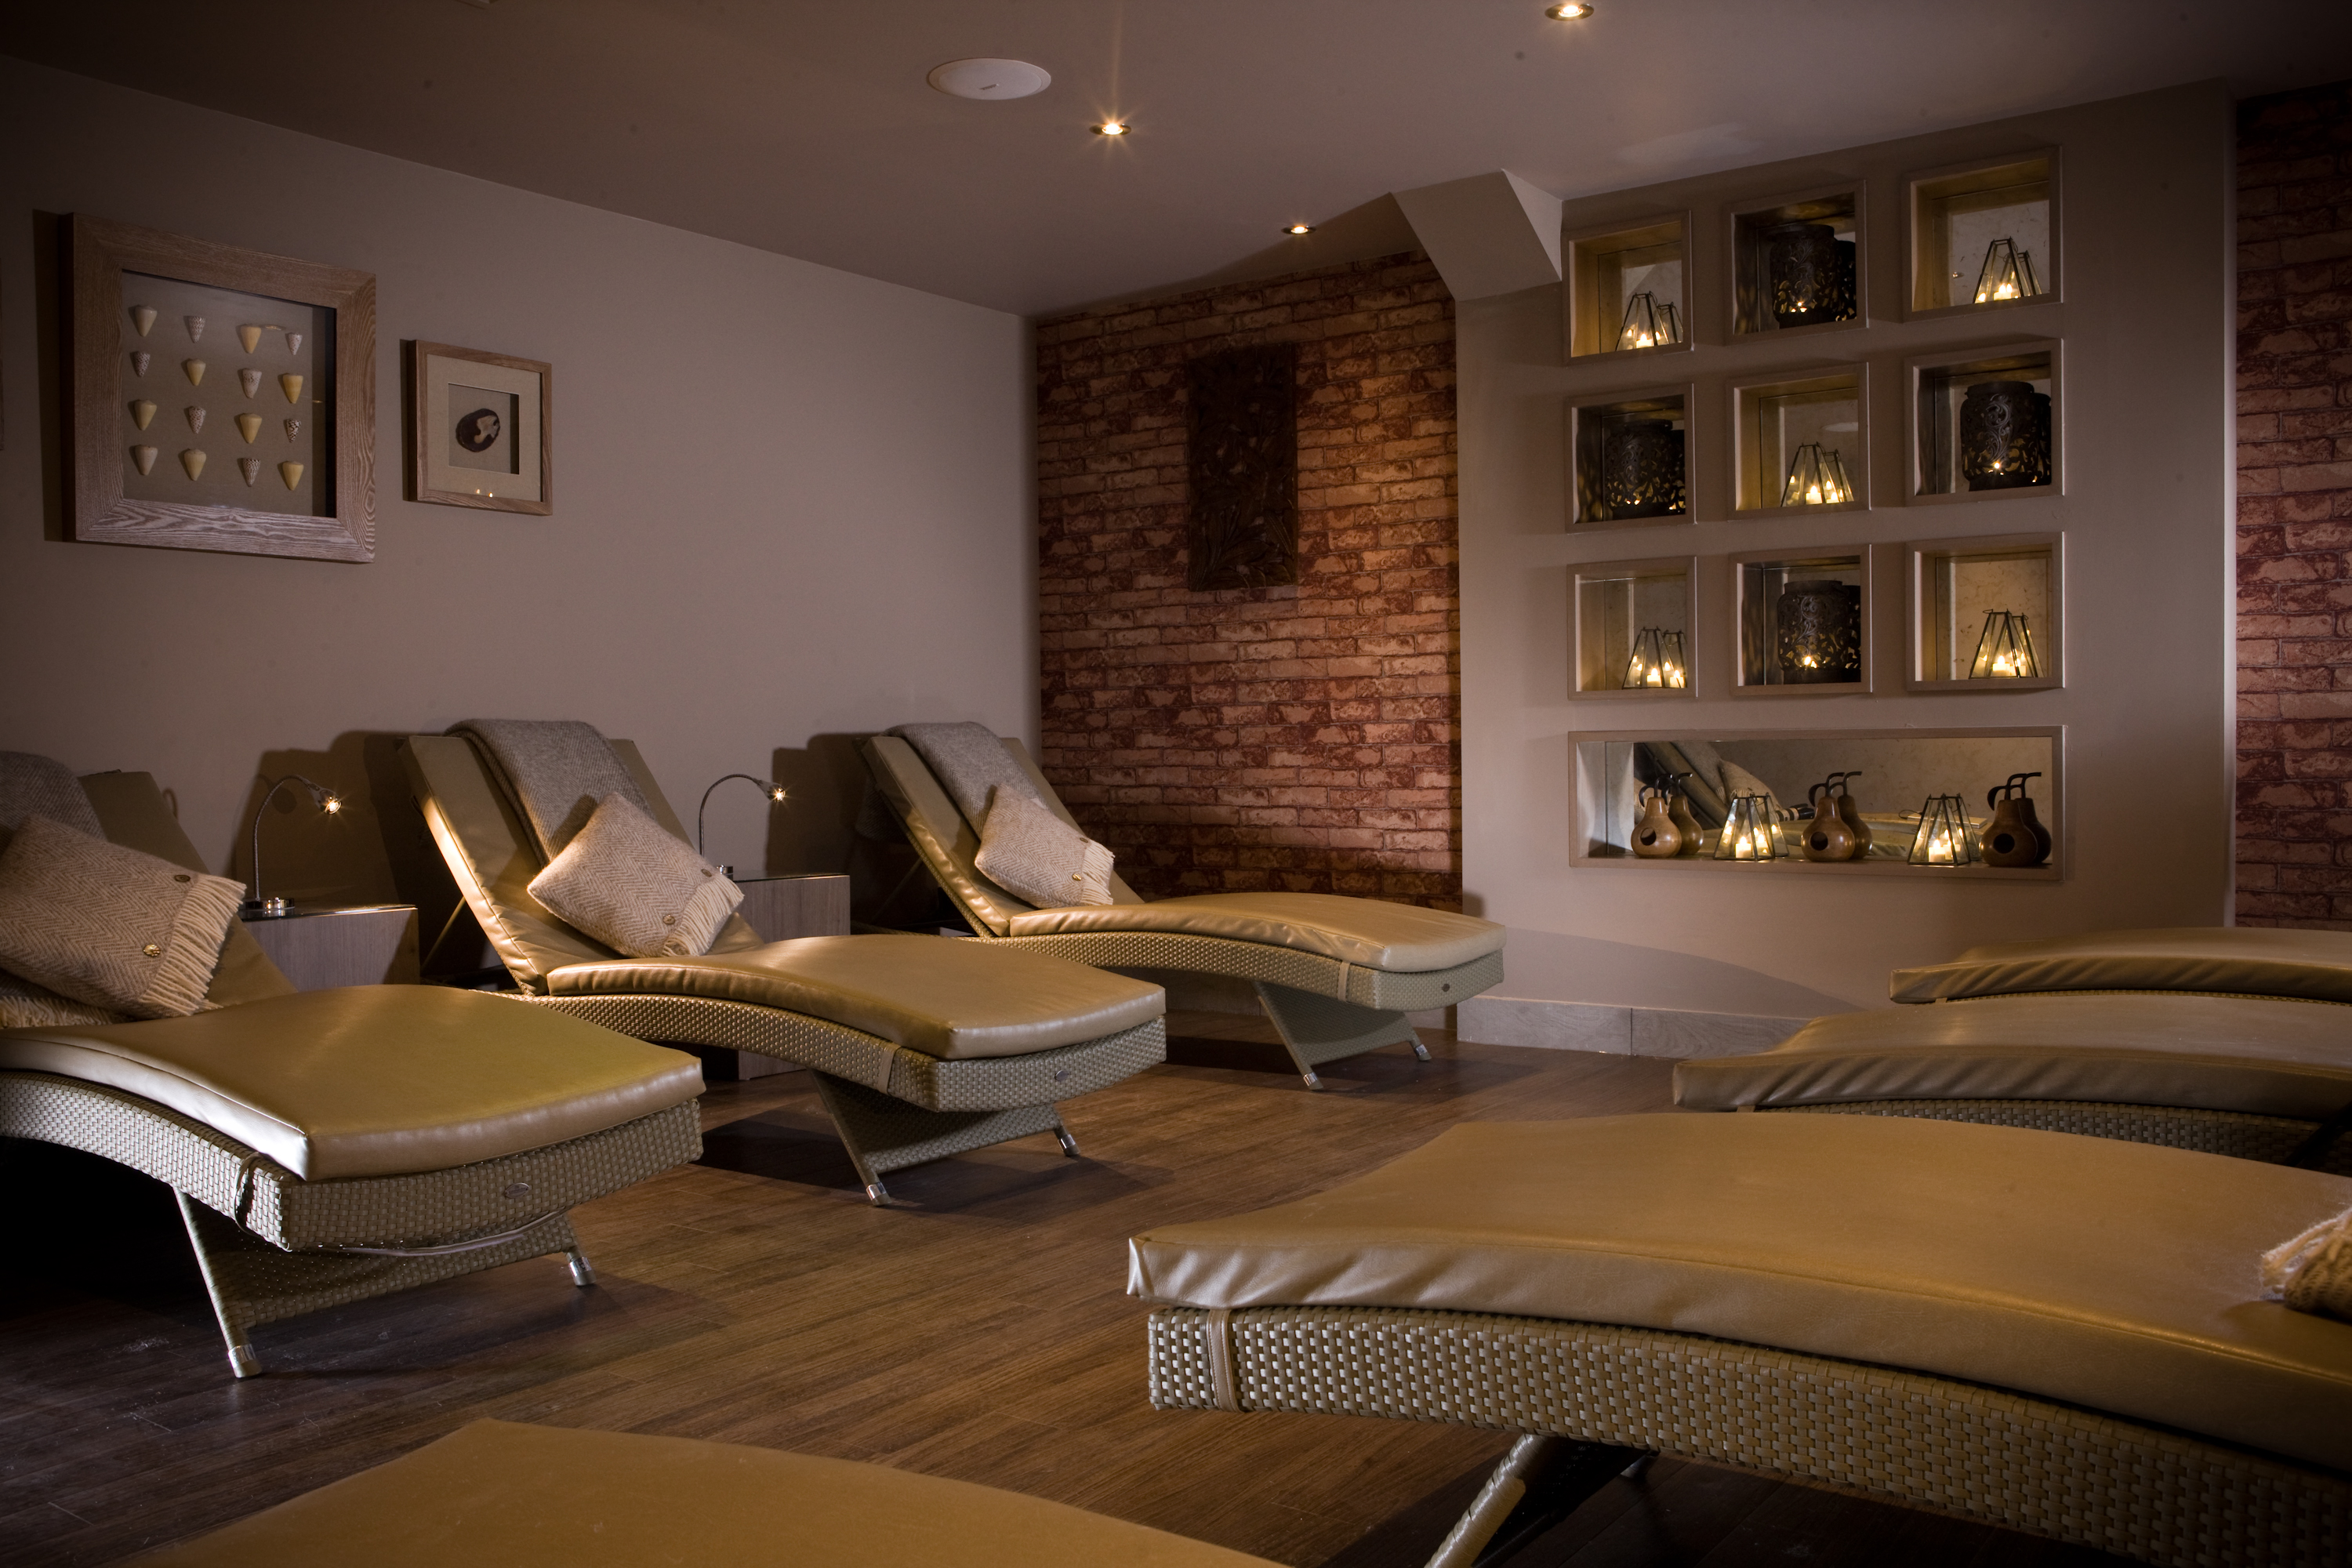 Craxton Spa Relaxation Room